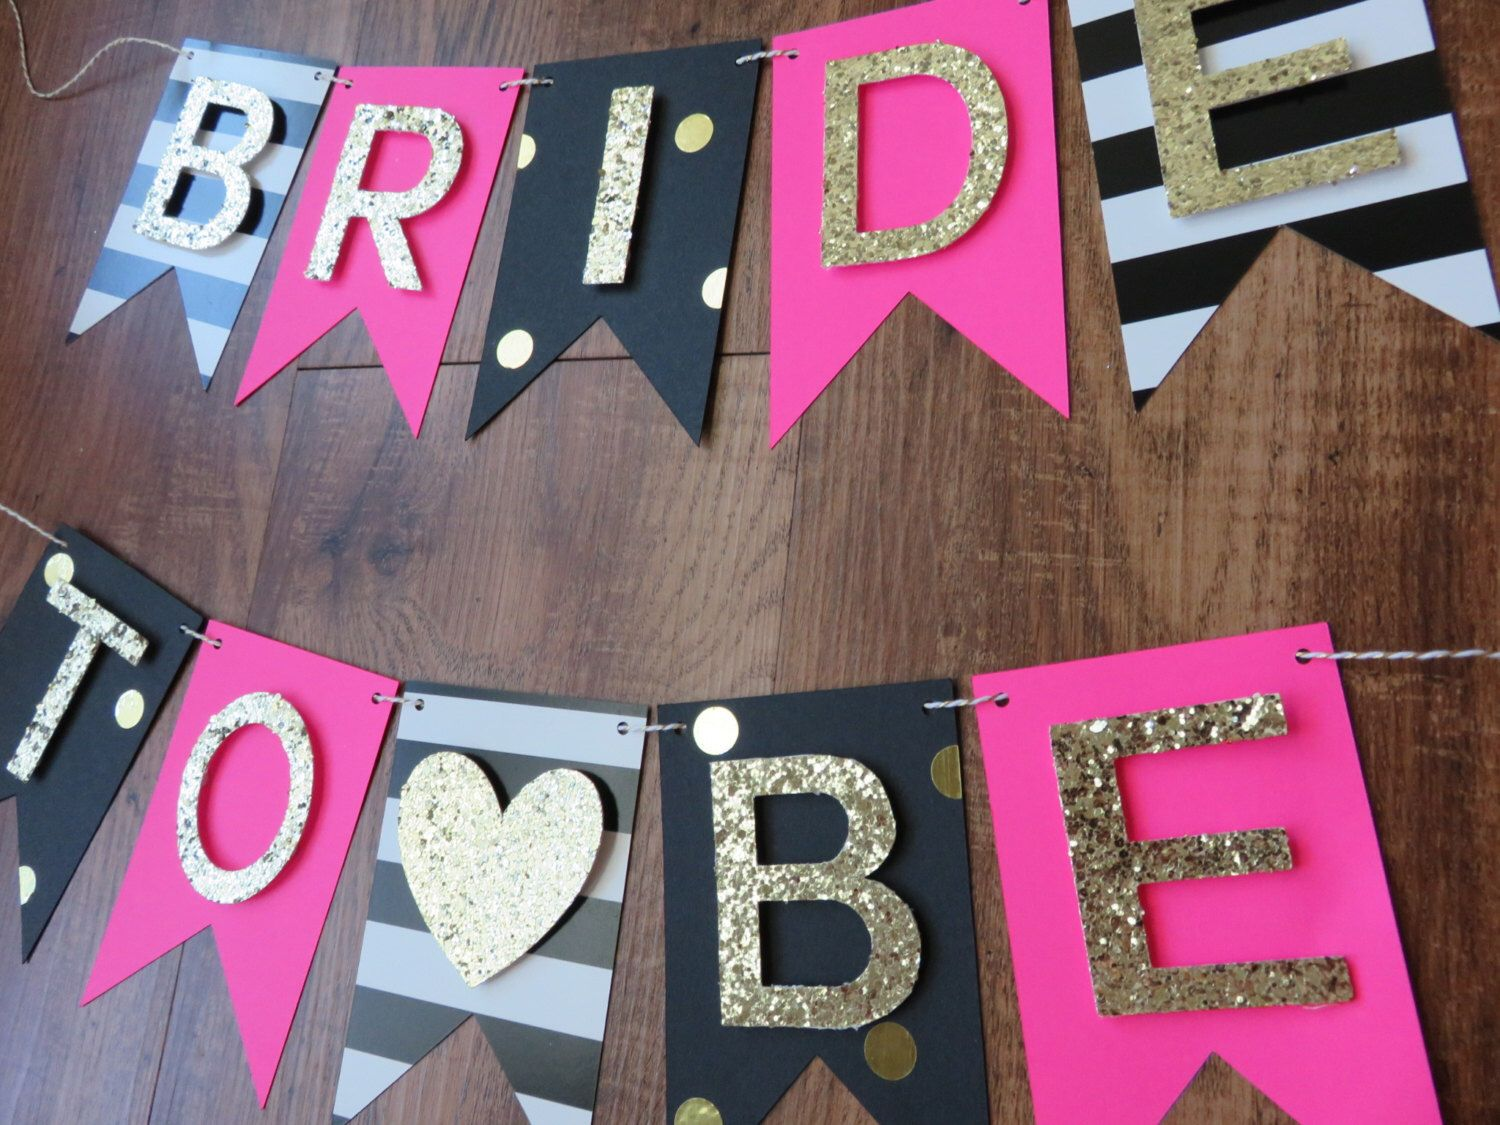 Bridal shower party supplies - Kate Spade Party Theme Bride To Be Banner Pink Gold Black White Decorations Bridal Shower Bachelorette Banner